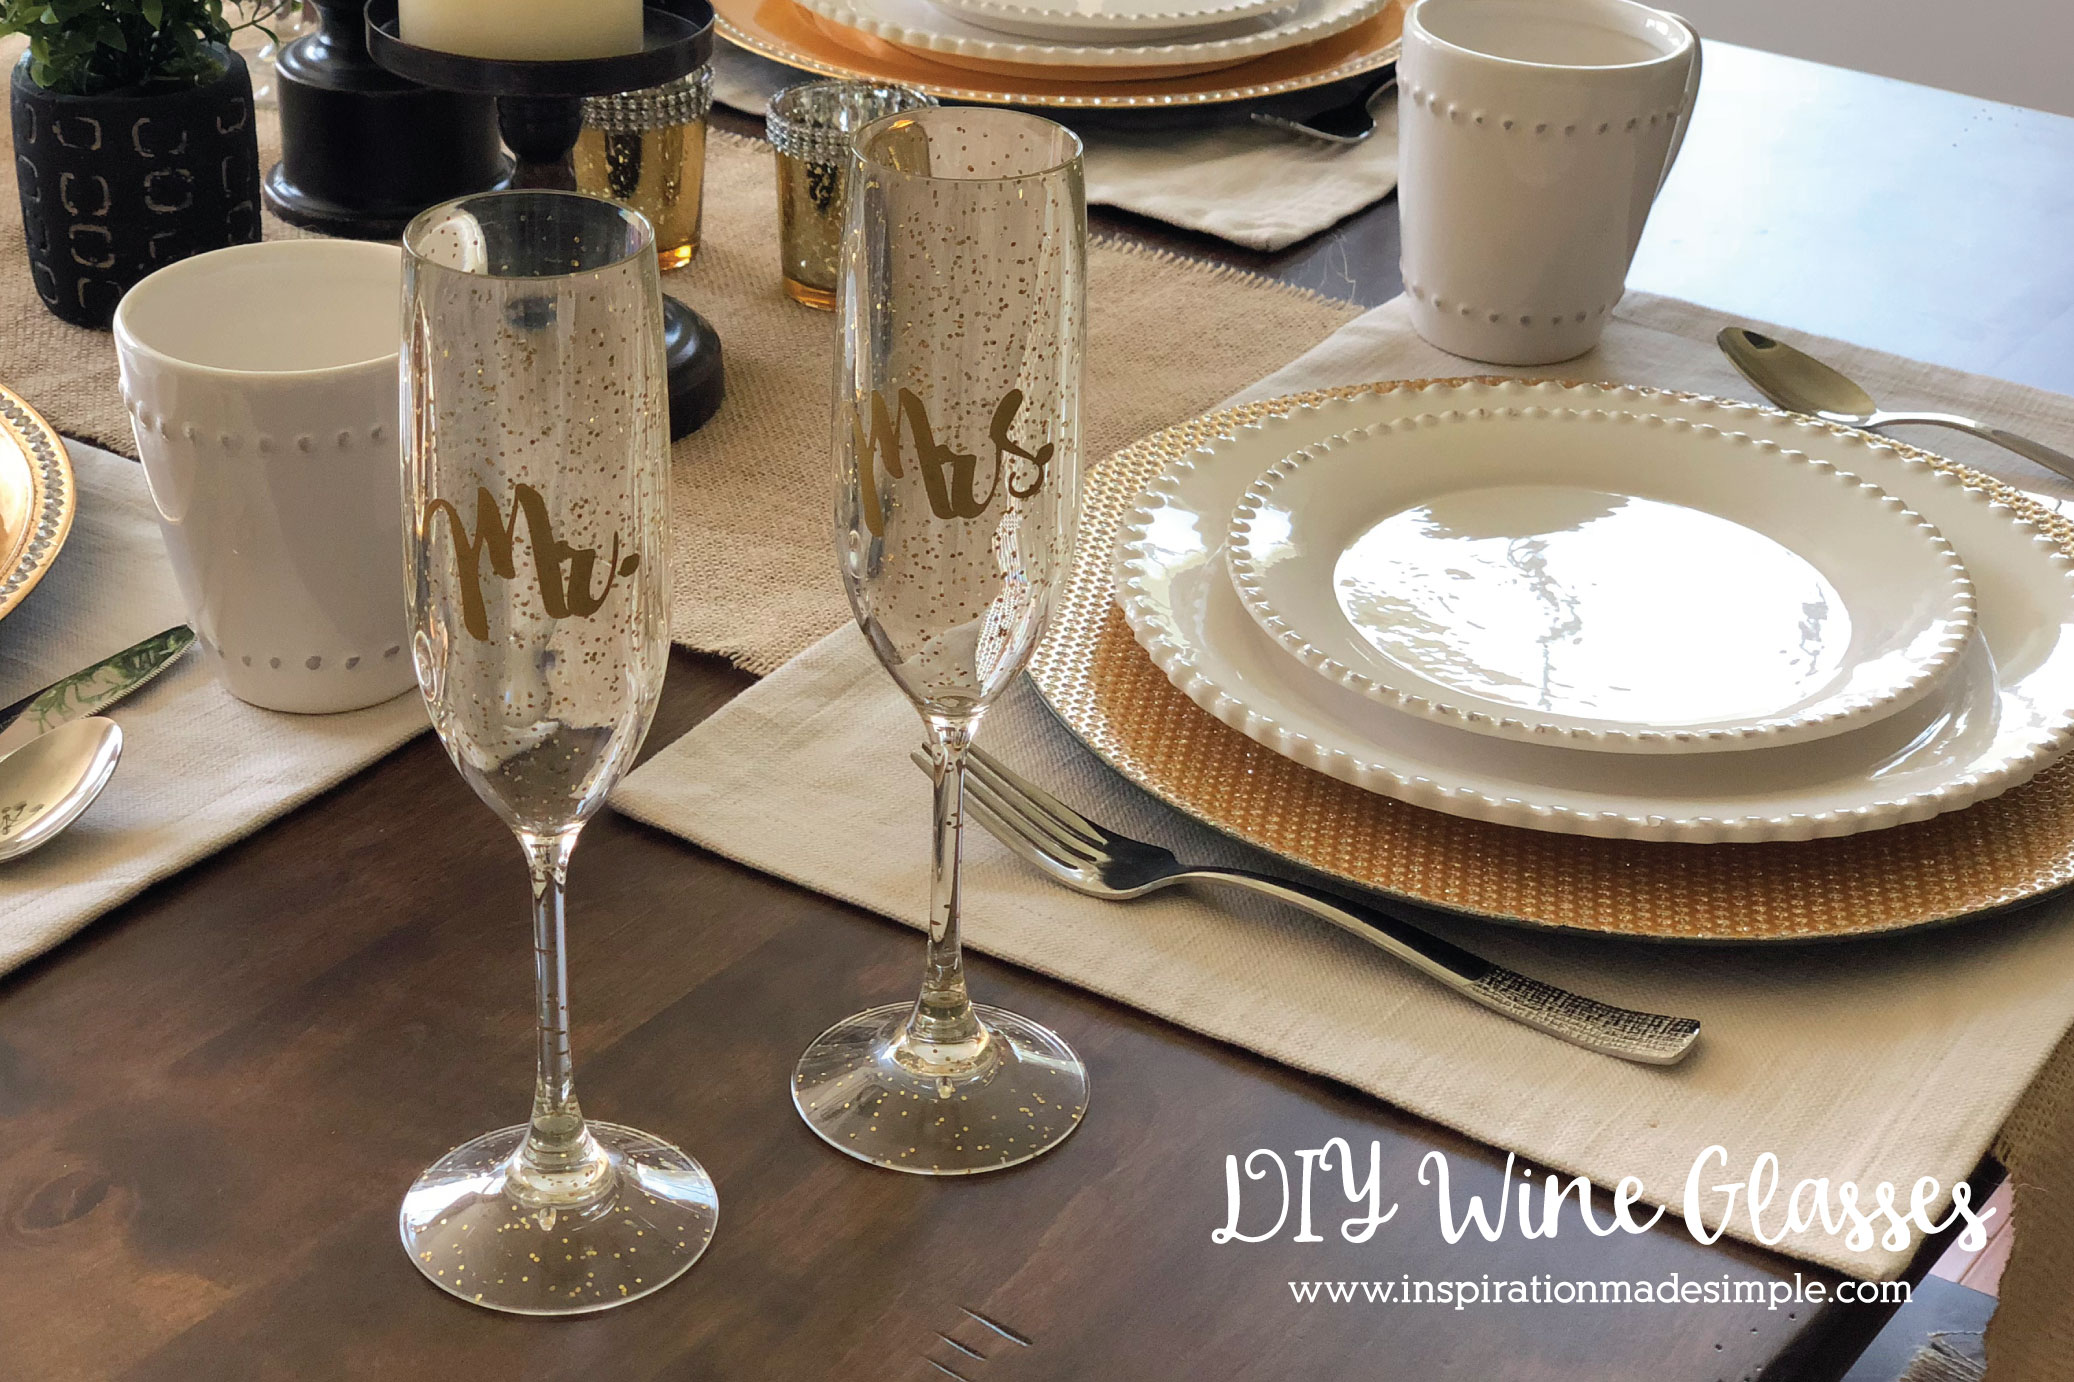 Diy Wedding Champagne Glasses Ideas Eventsojudith Your One Stop Wedding Party And Event